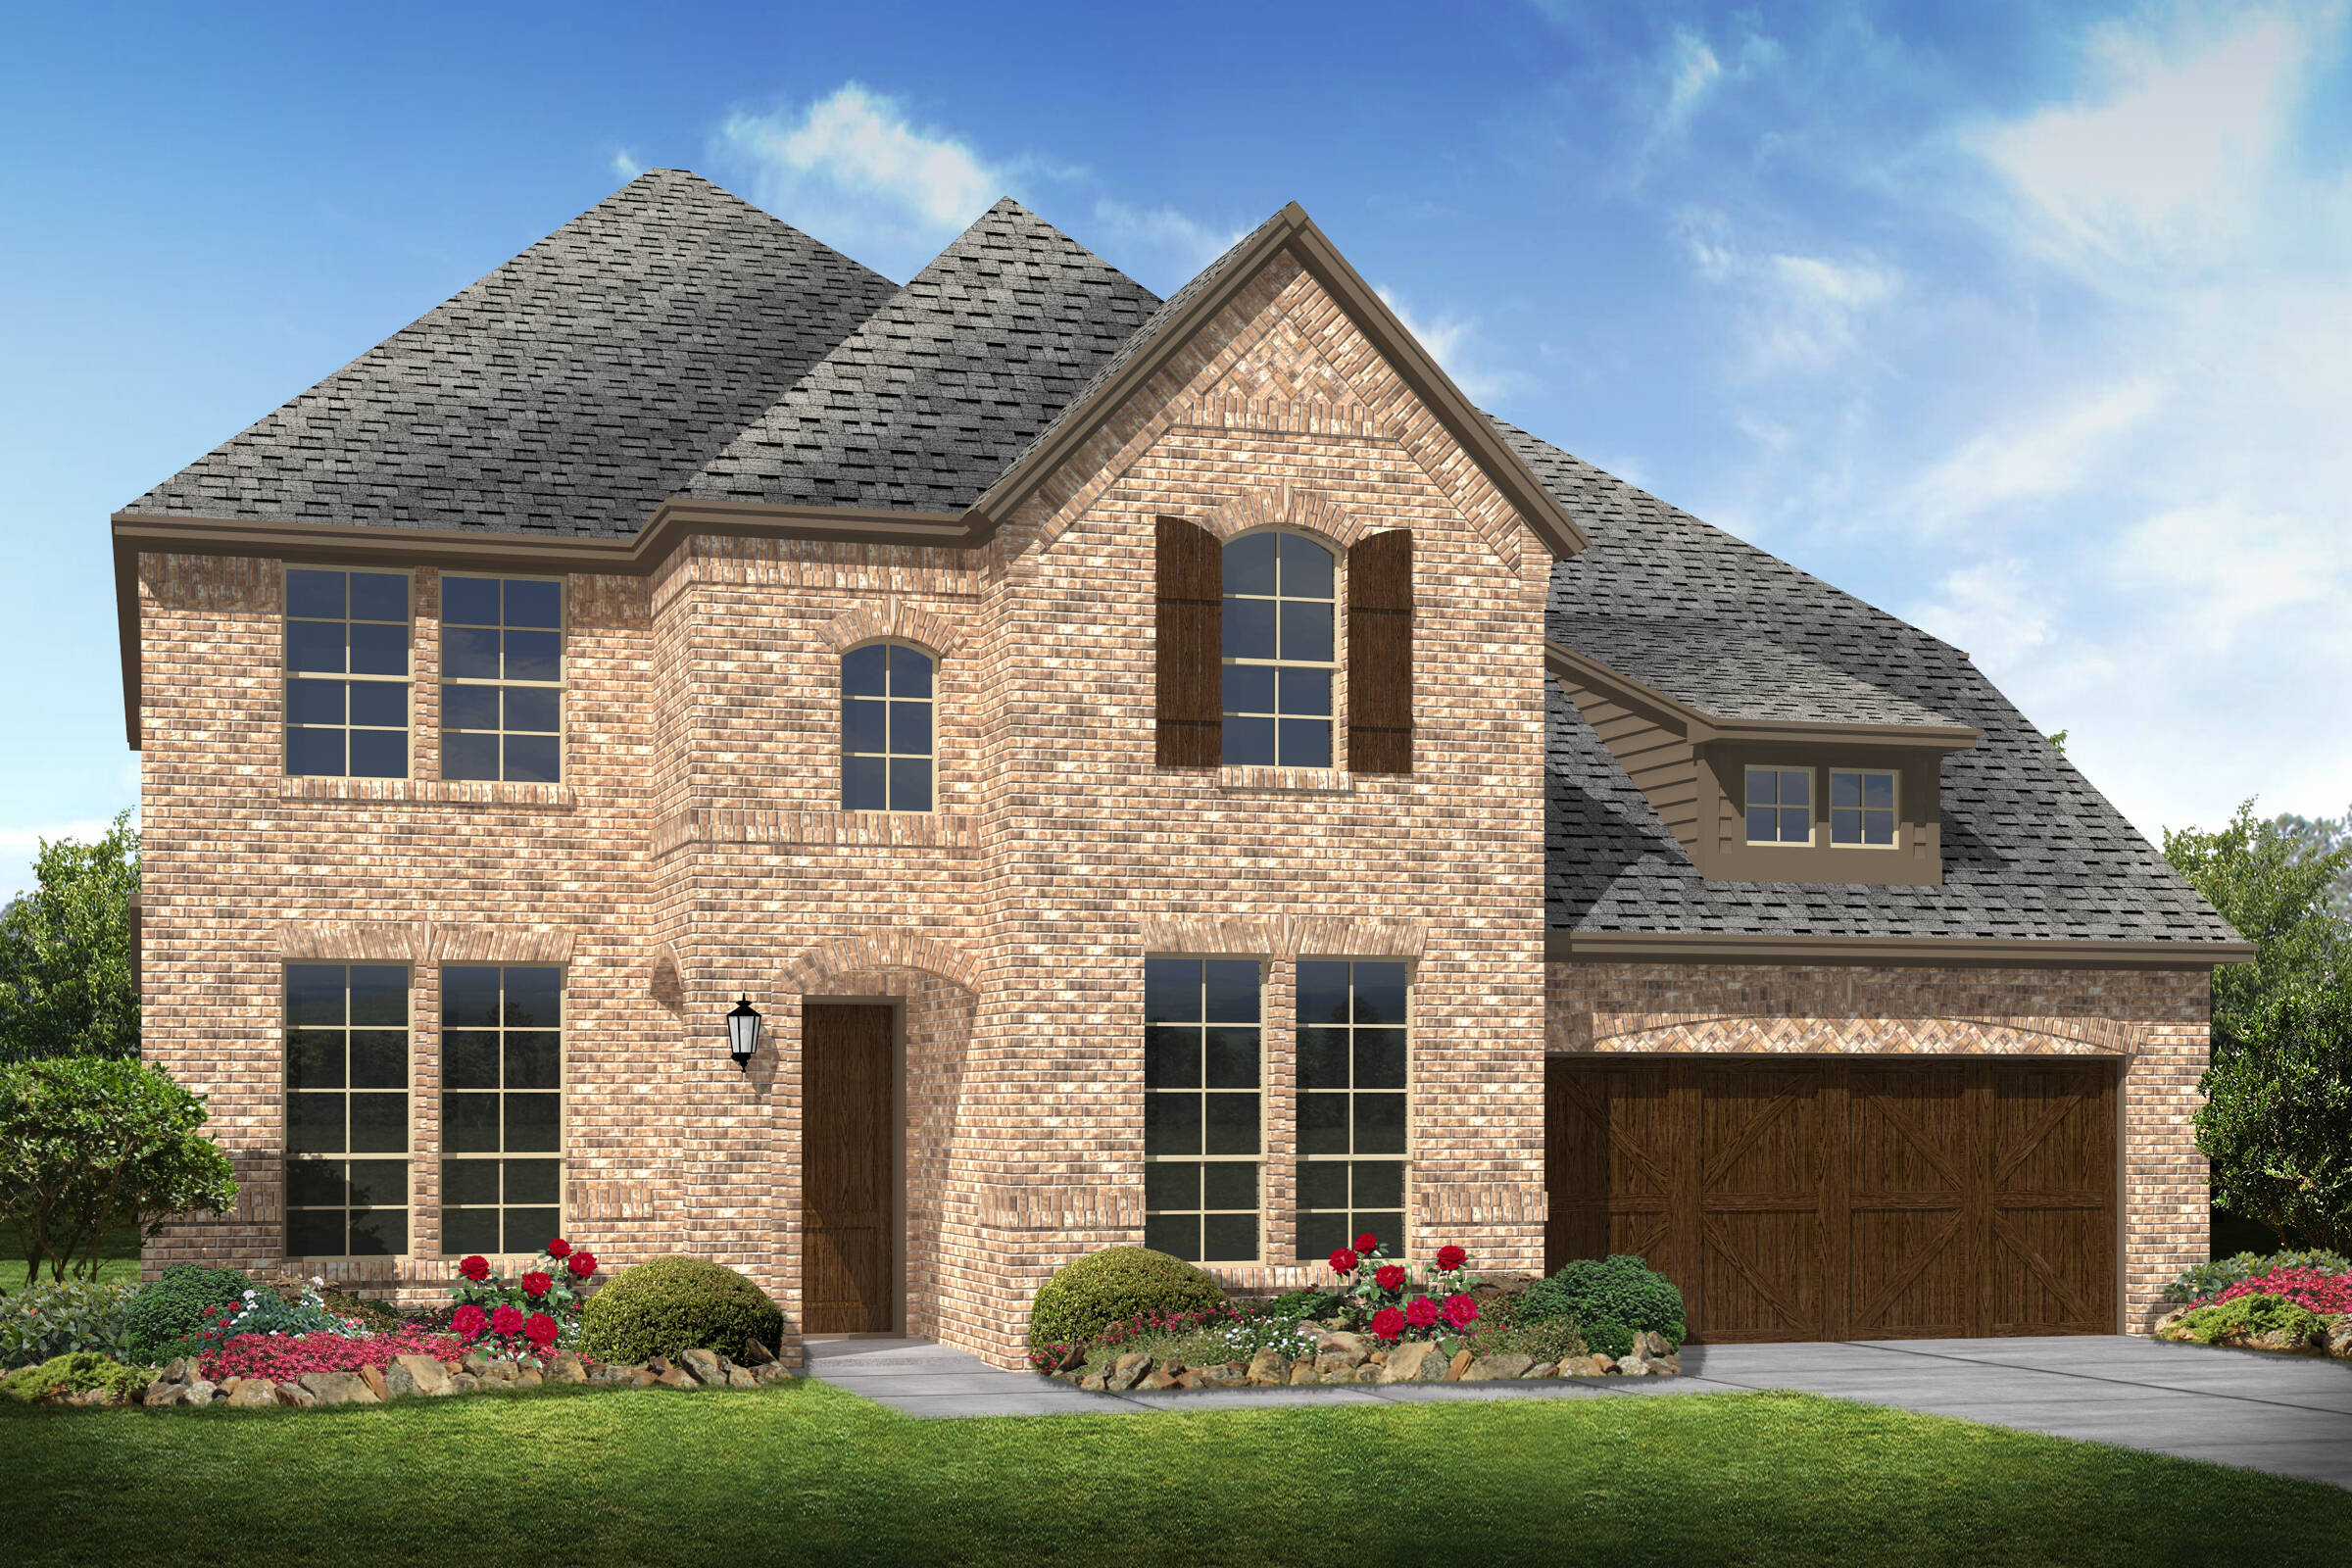 WestoverX A new homes frisco tx